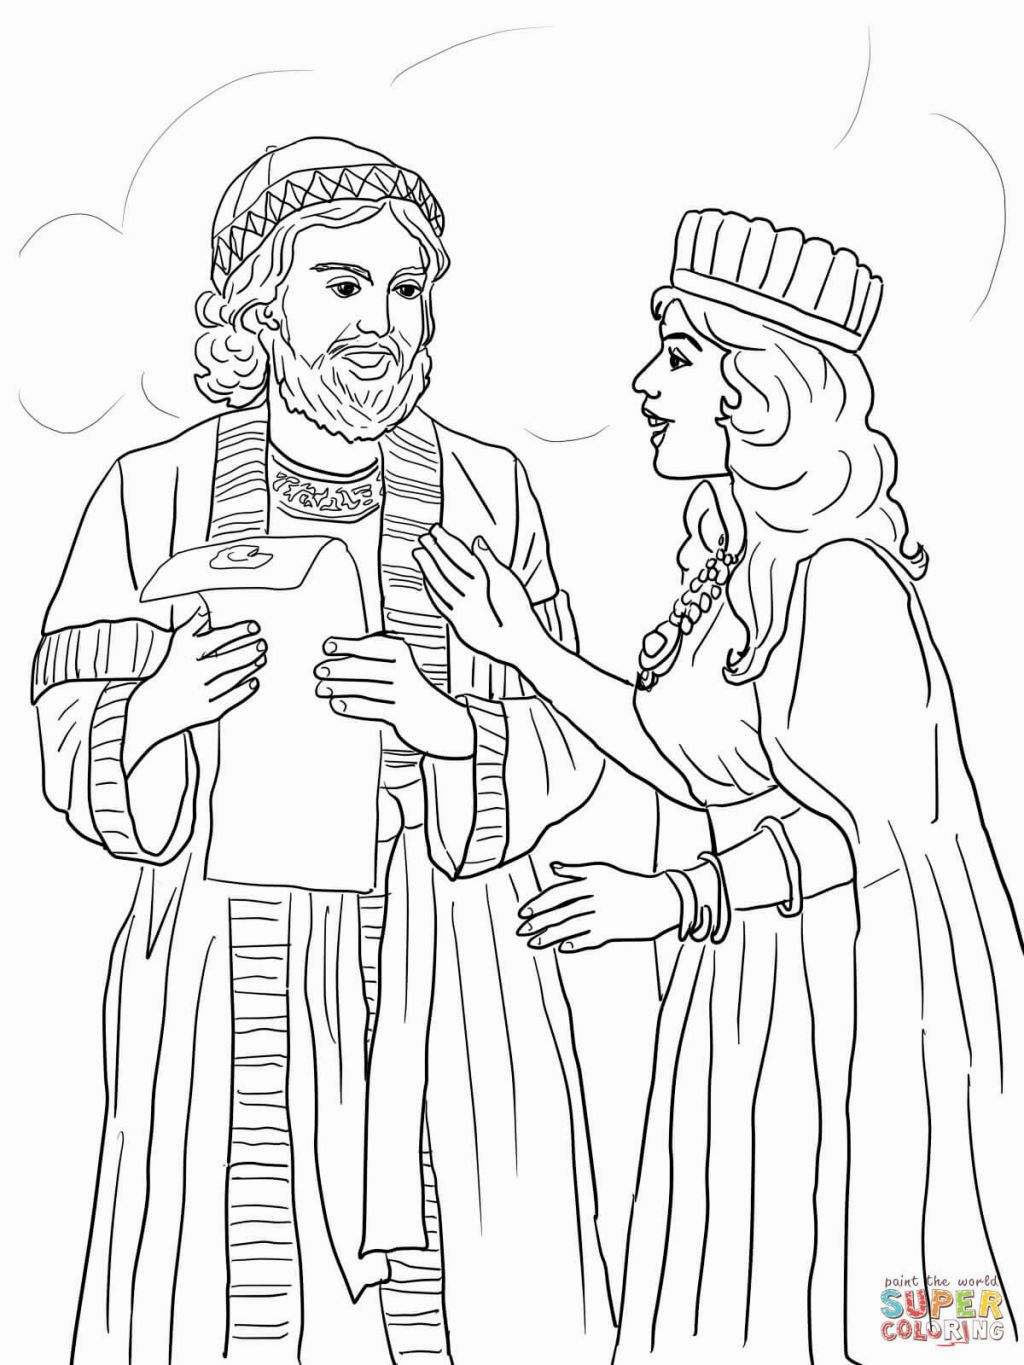 free bible coloring pages queen esther queen esther bible coloring pages with images bible esther coloring pages free queen bible